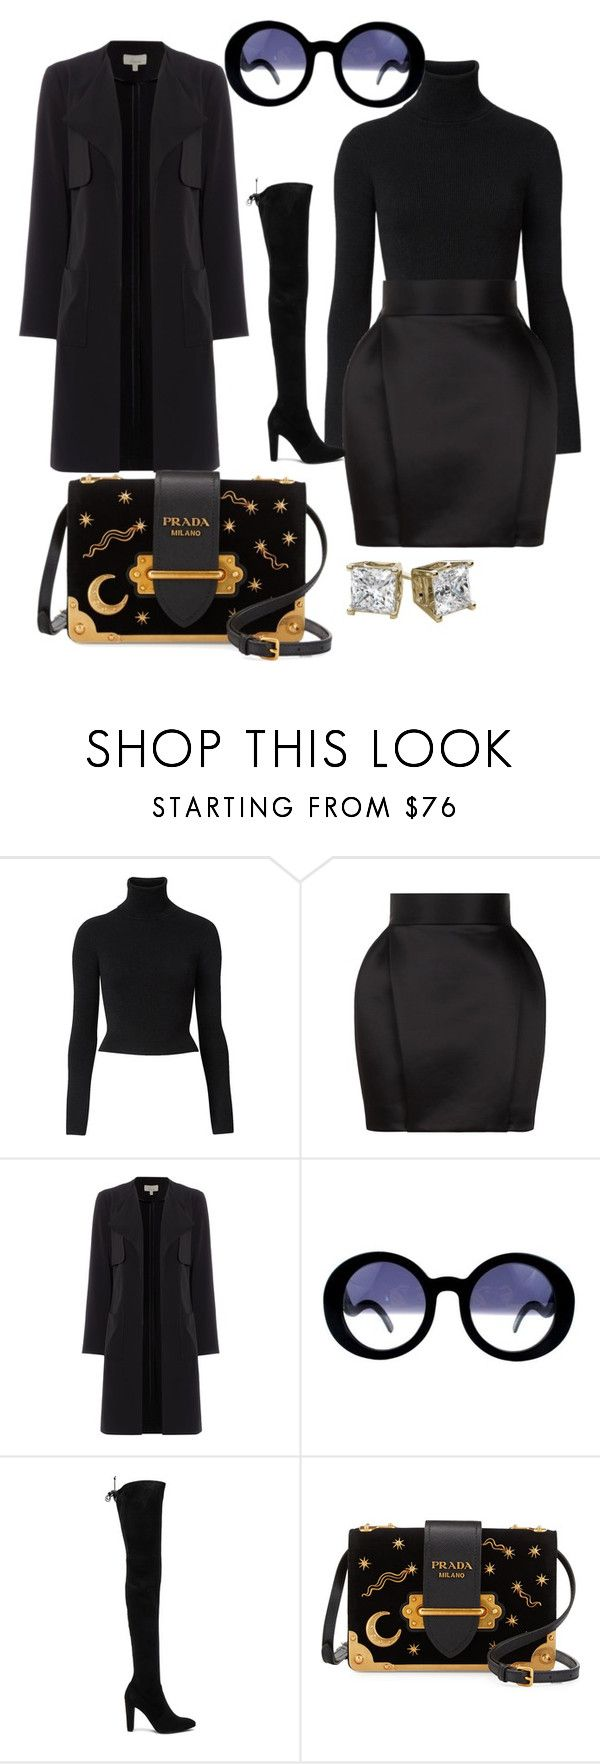 """""""Dressed in all Black like an Omen"""" by styledbytammy ❤ liked on Polyvore featuring Witchery, Balmain, Chanel, Stuart Weitzman and Prada"""